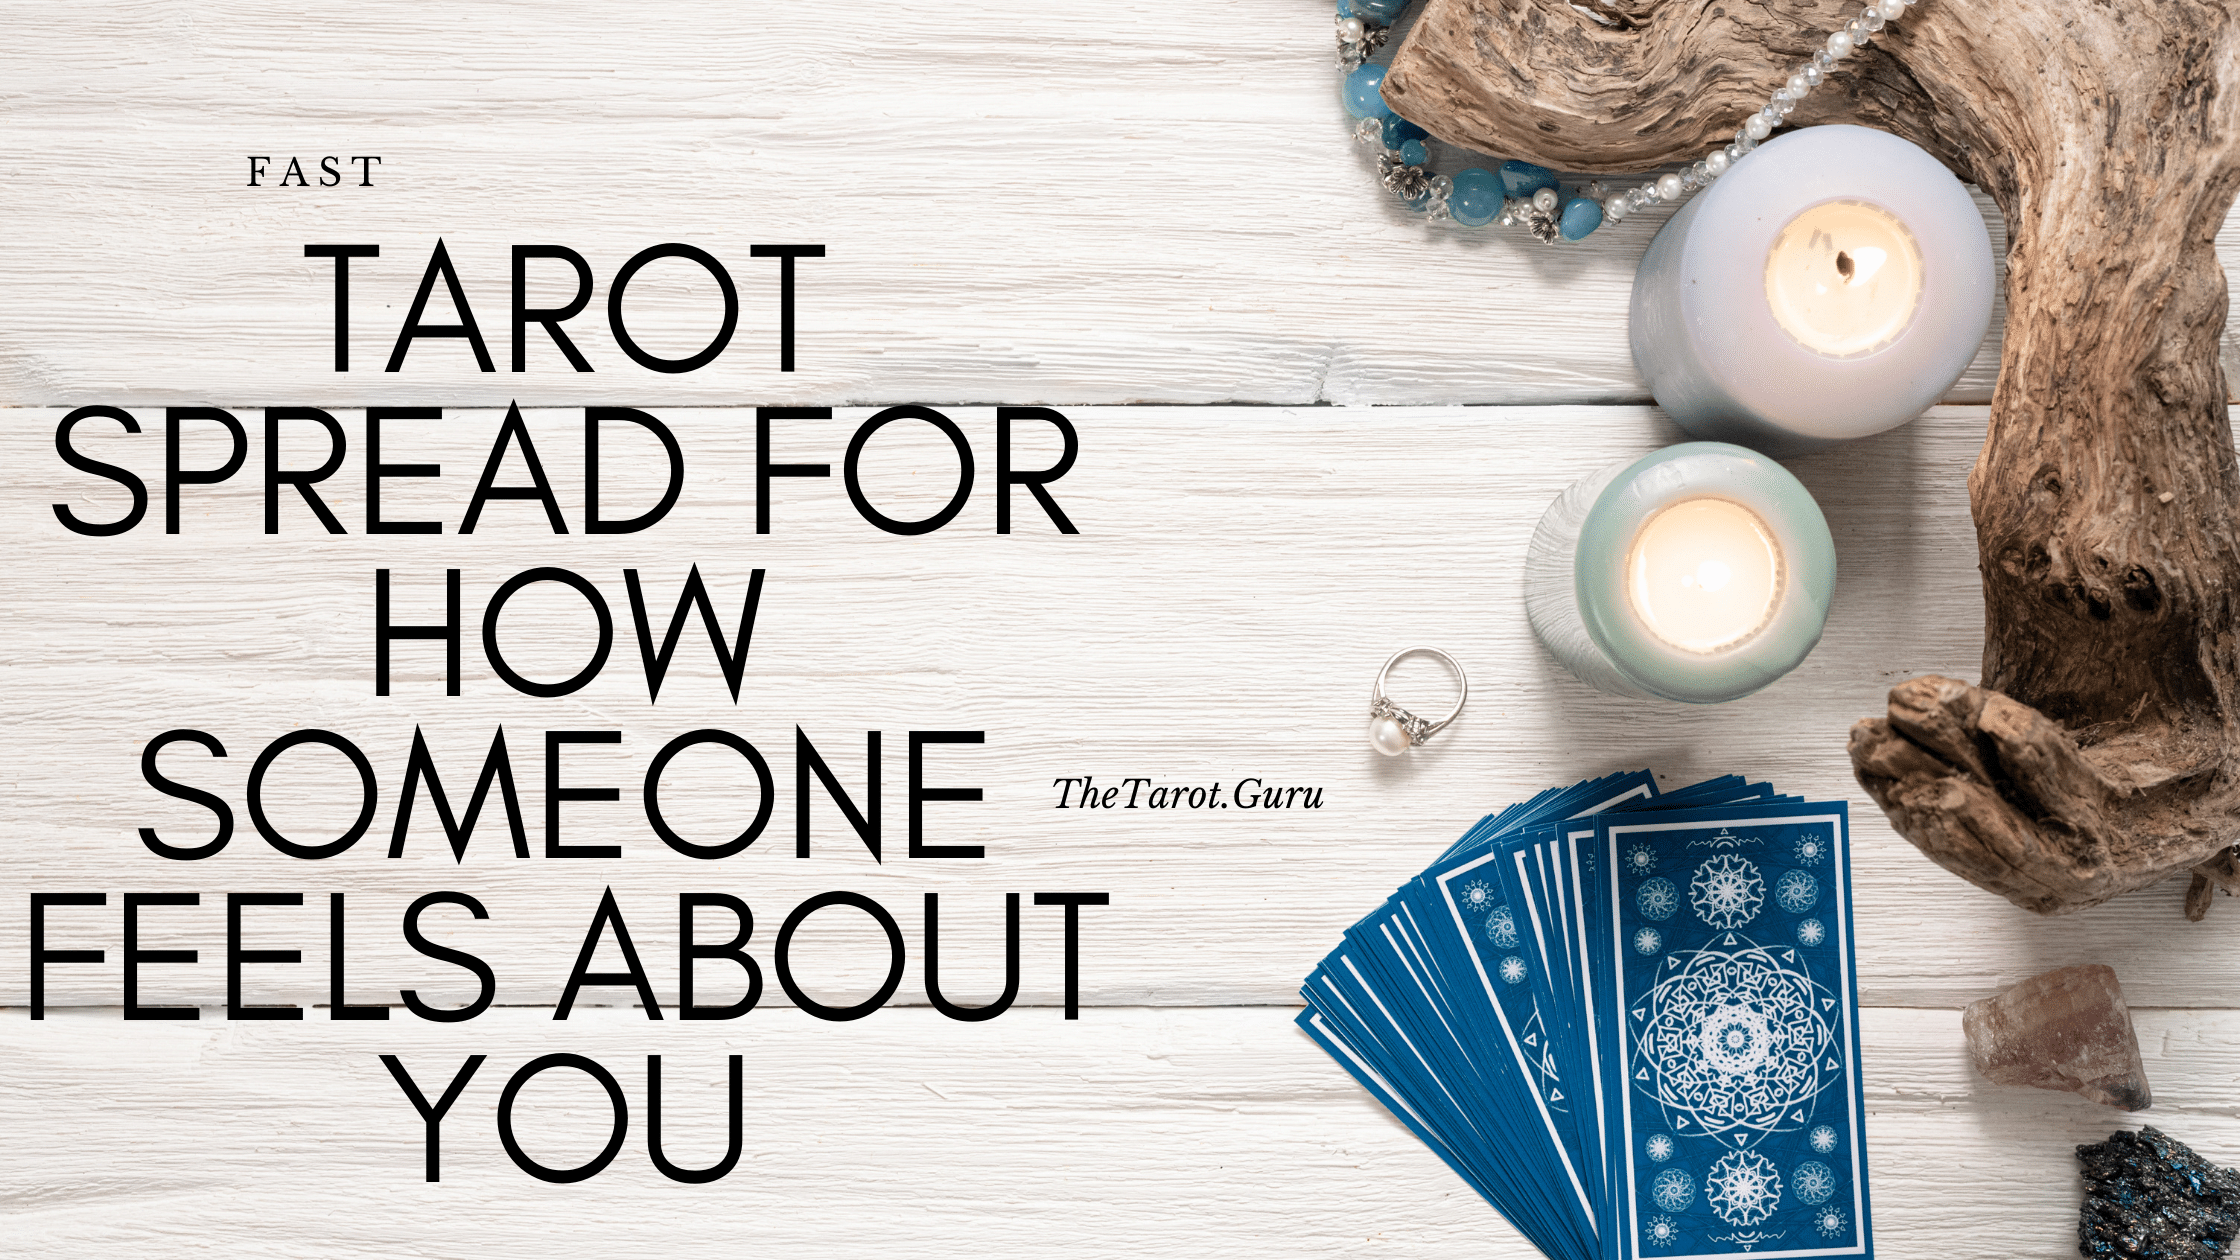 Tarot Spread For How Someone Feels About You